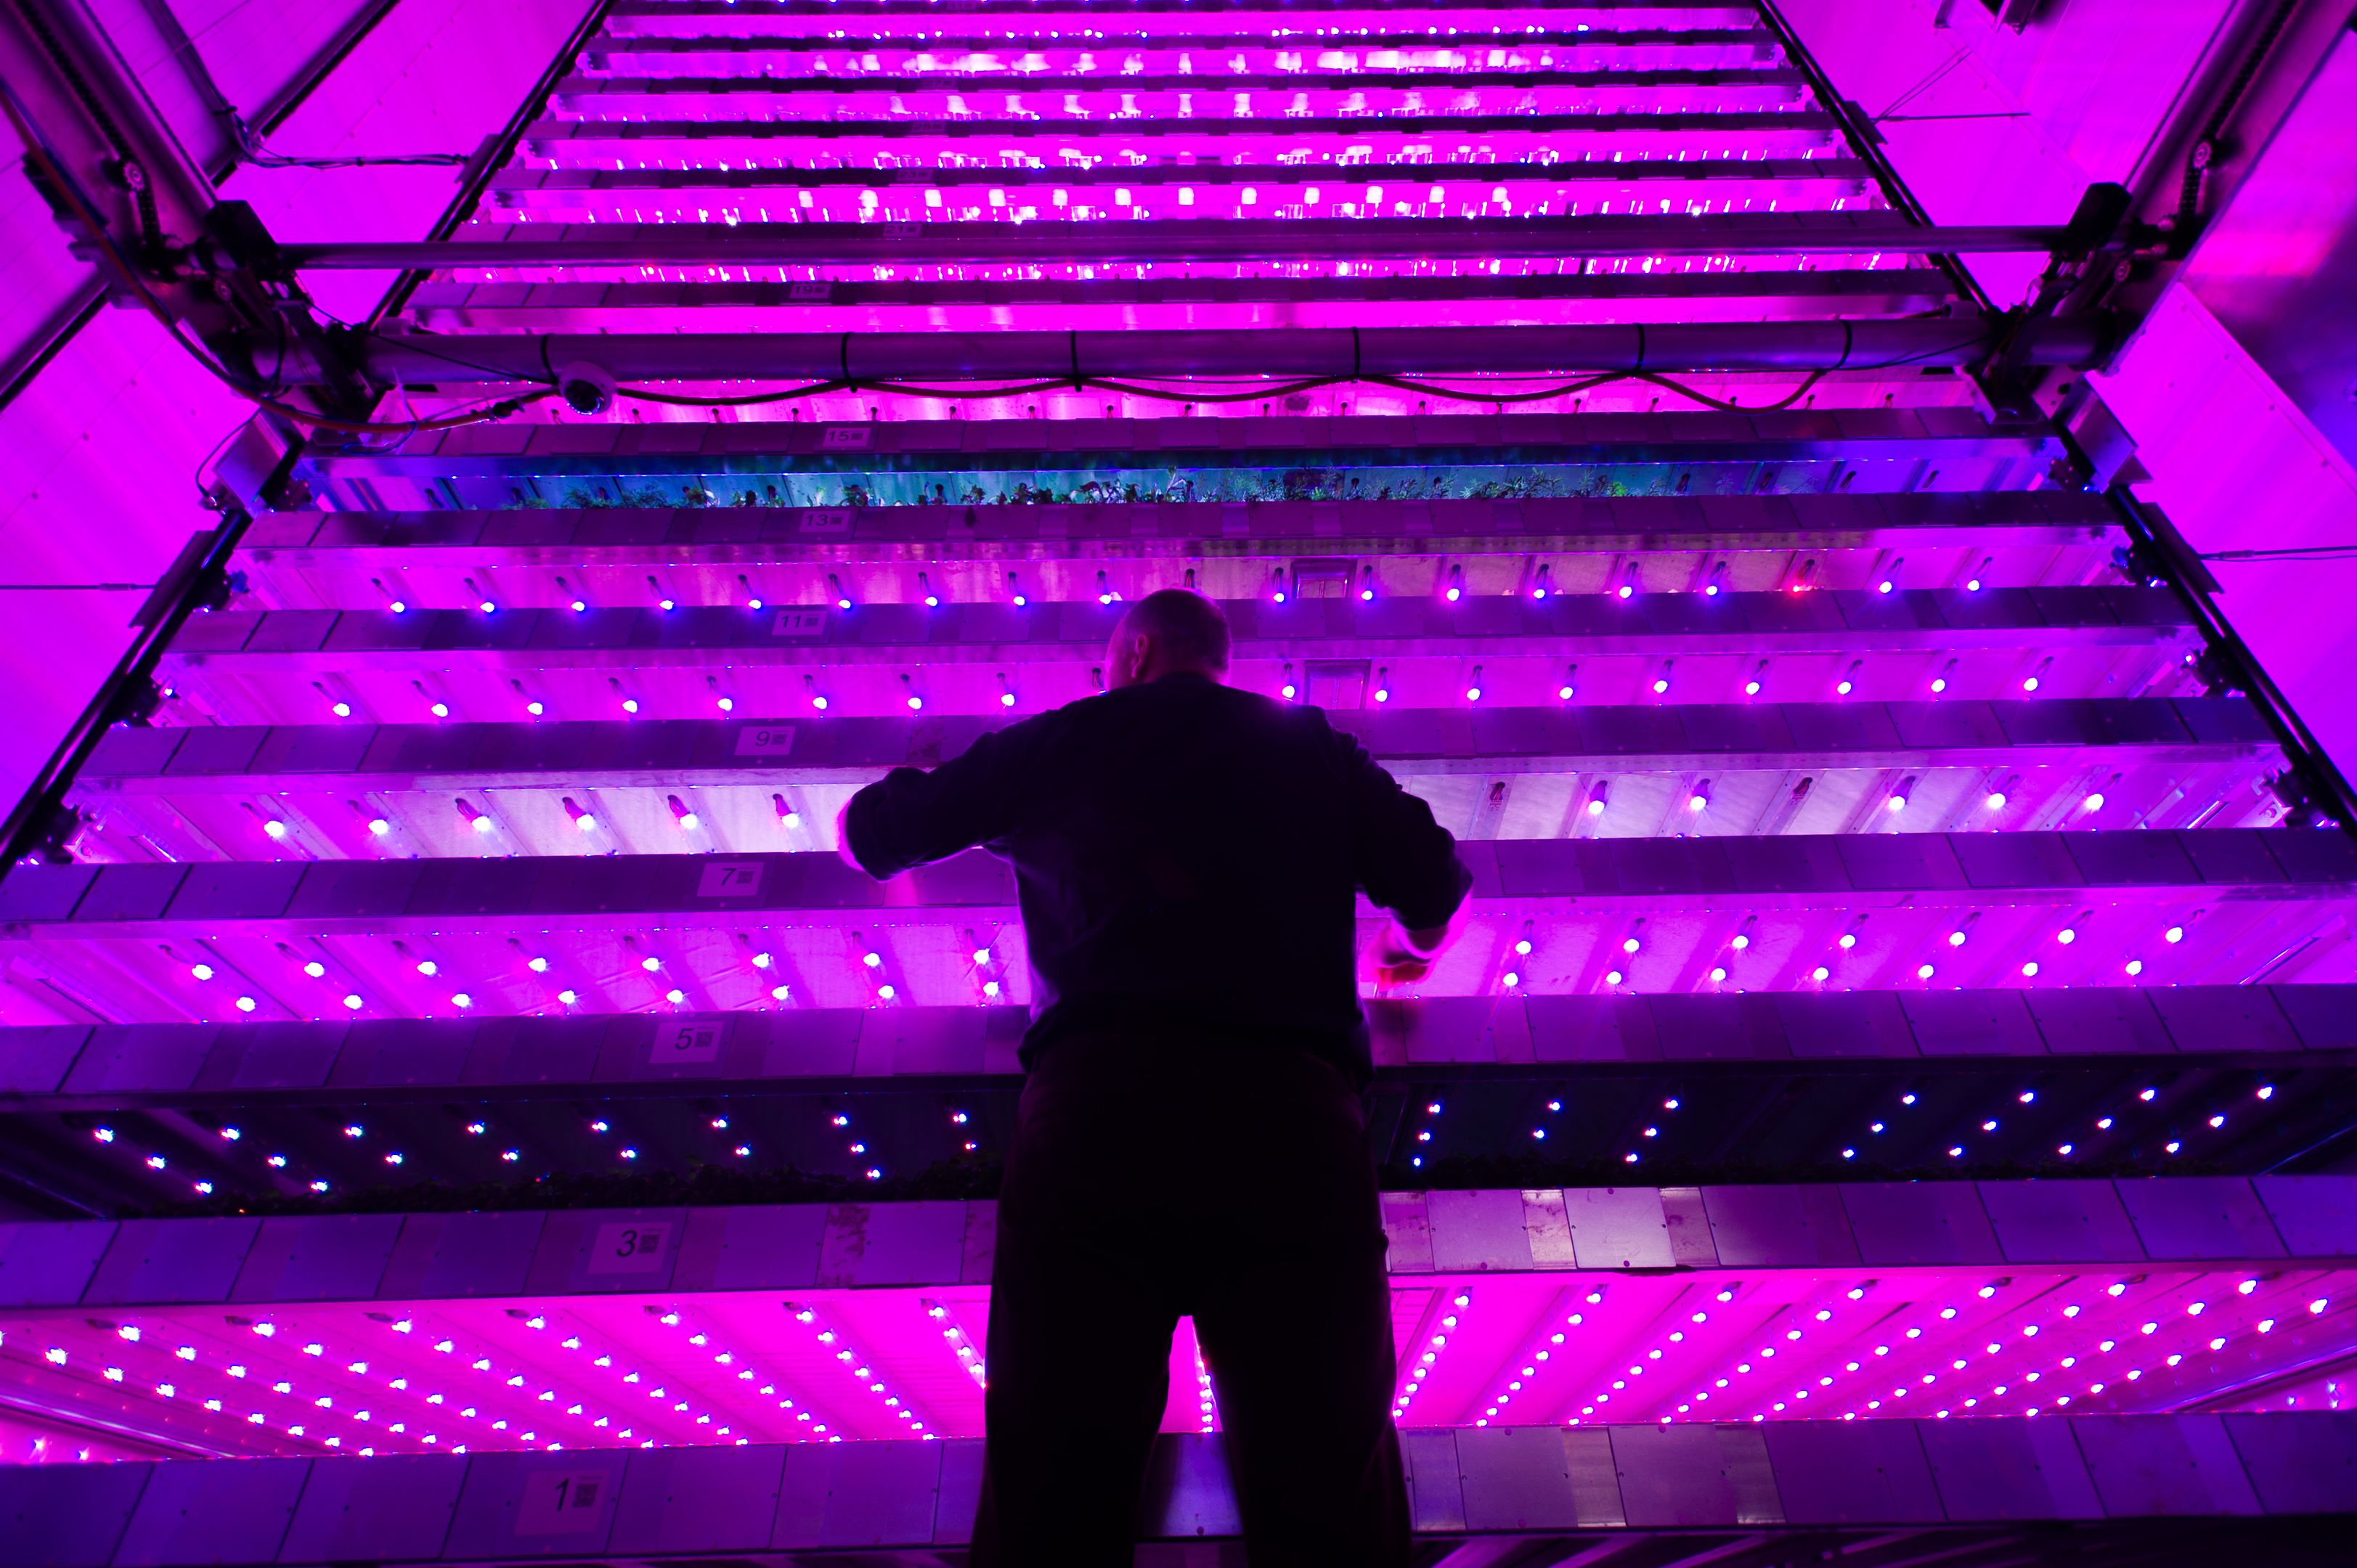 One of the development team members, Neil Skinner, checks on the lighting, IGS, James Hutton Institute, Invergowrie.